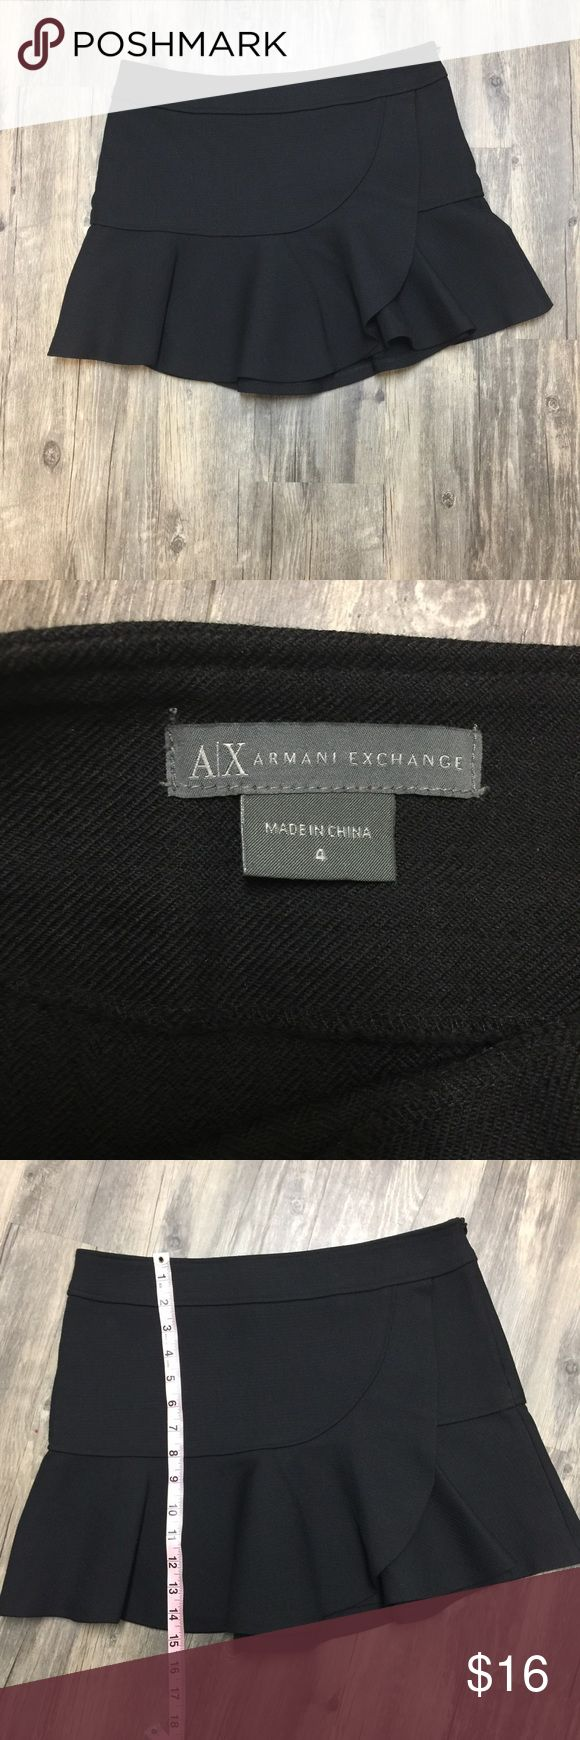 AX Armani Exchange Faux wrap skater skirt sz 4 Lovely preowned AX Armani Exchange faux wrap black skater skirt sz 4. The skirt is made of 43% wool and 42% Polyester This trendy skirt is in very good condition no holes stains rips or tear. A/X Armani Exchange Skirts Mini